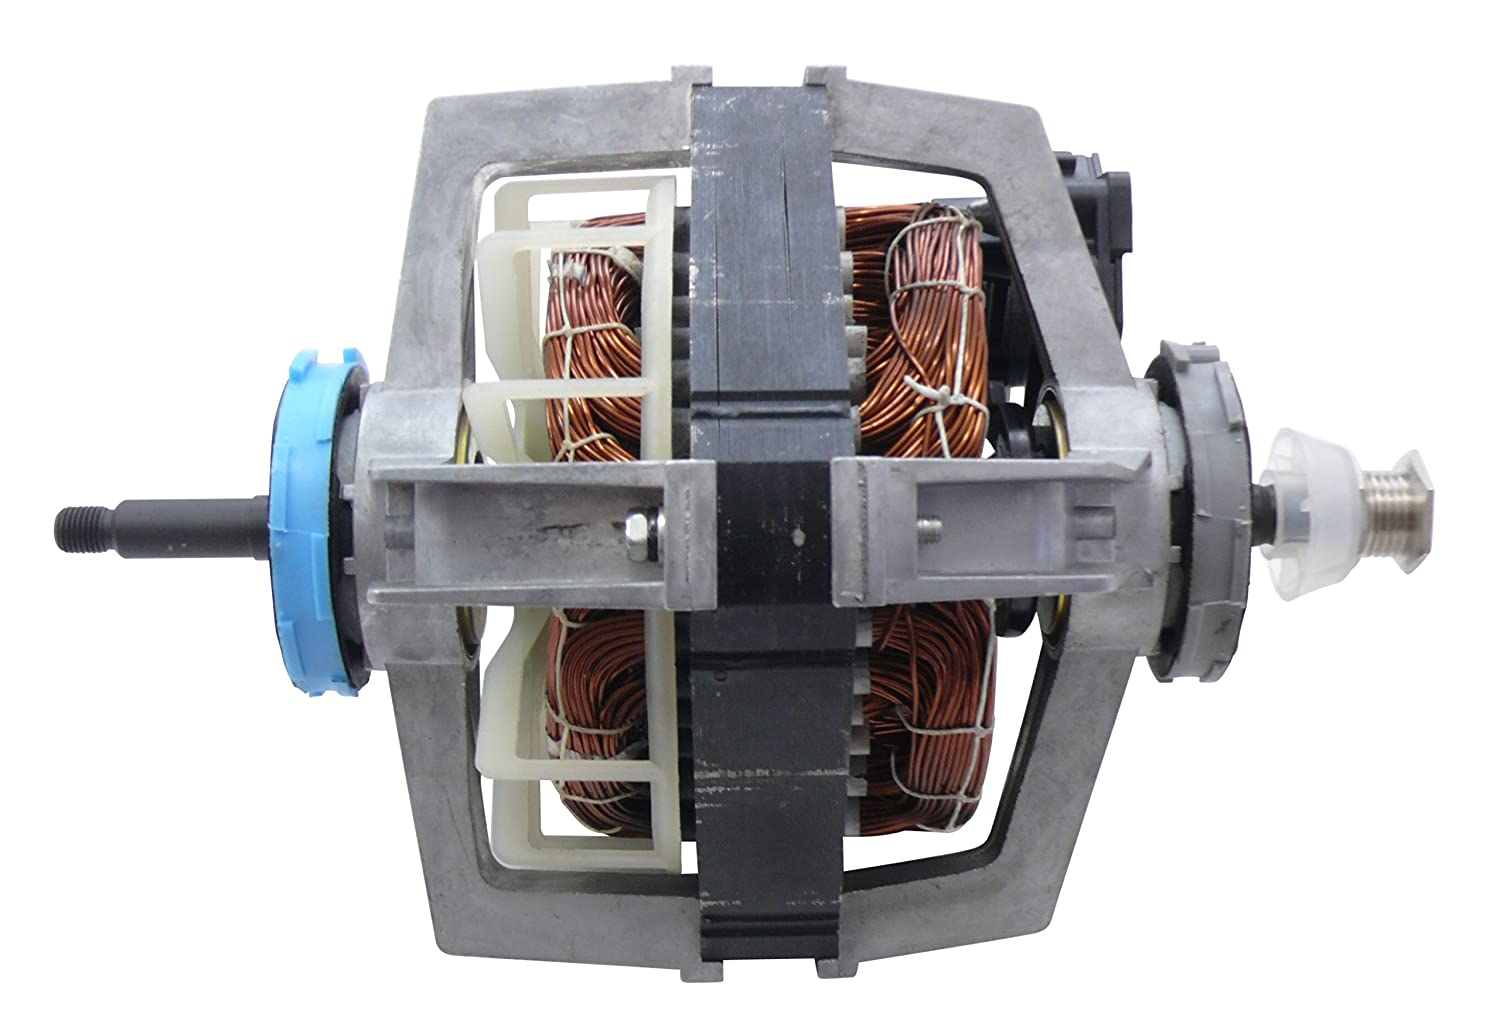 Kenmore Dryer Motor Replacement Whirlpool 279827 Drive Appliancepartsproscom New Part For Sears Home Improvement 1500x1010